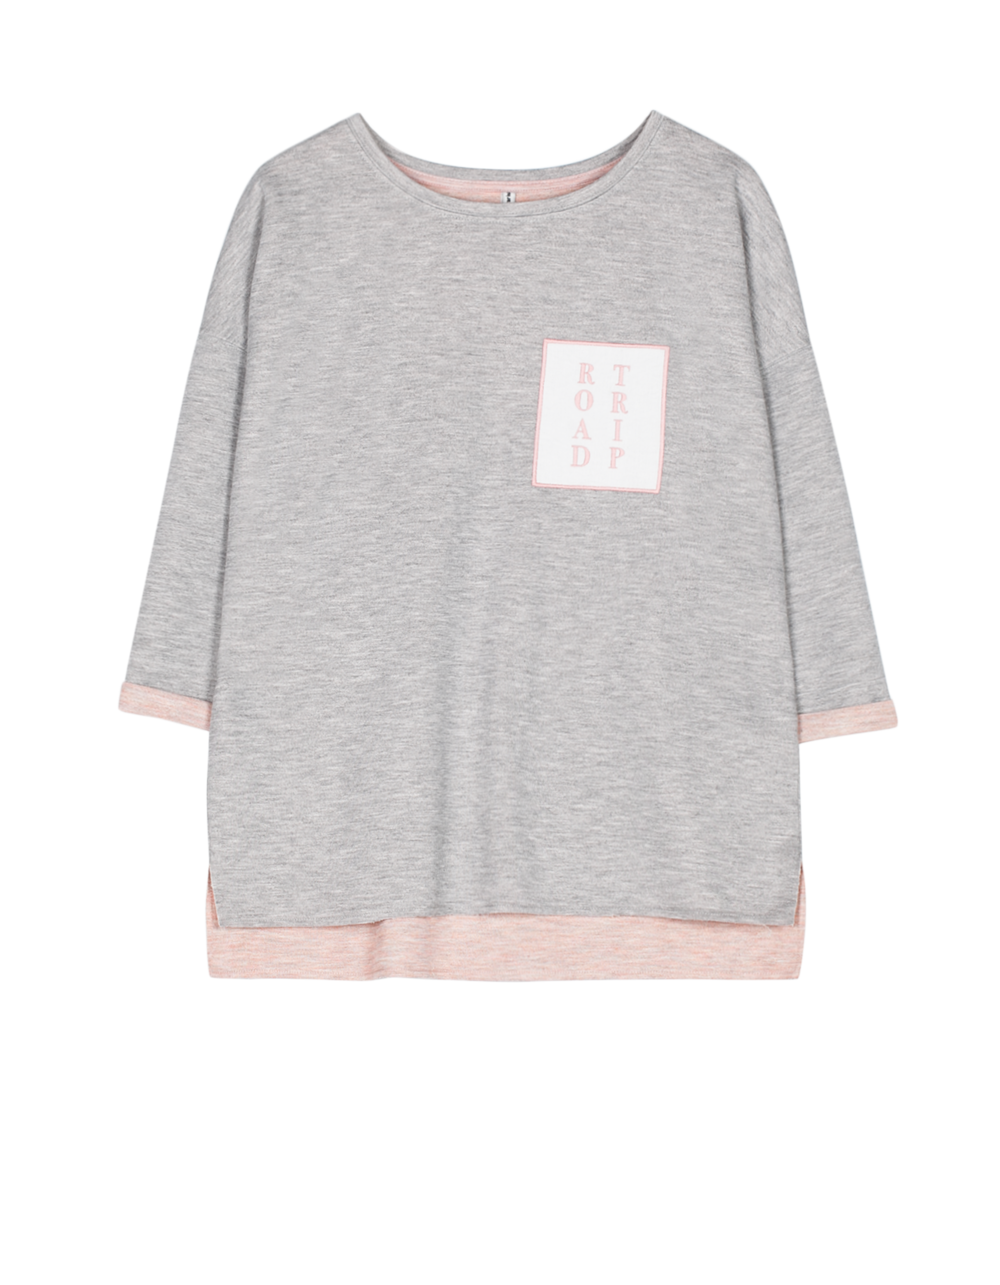 Stradivarius_SS16_parches_pines (8).png